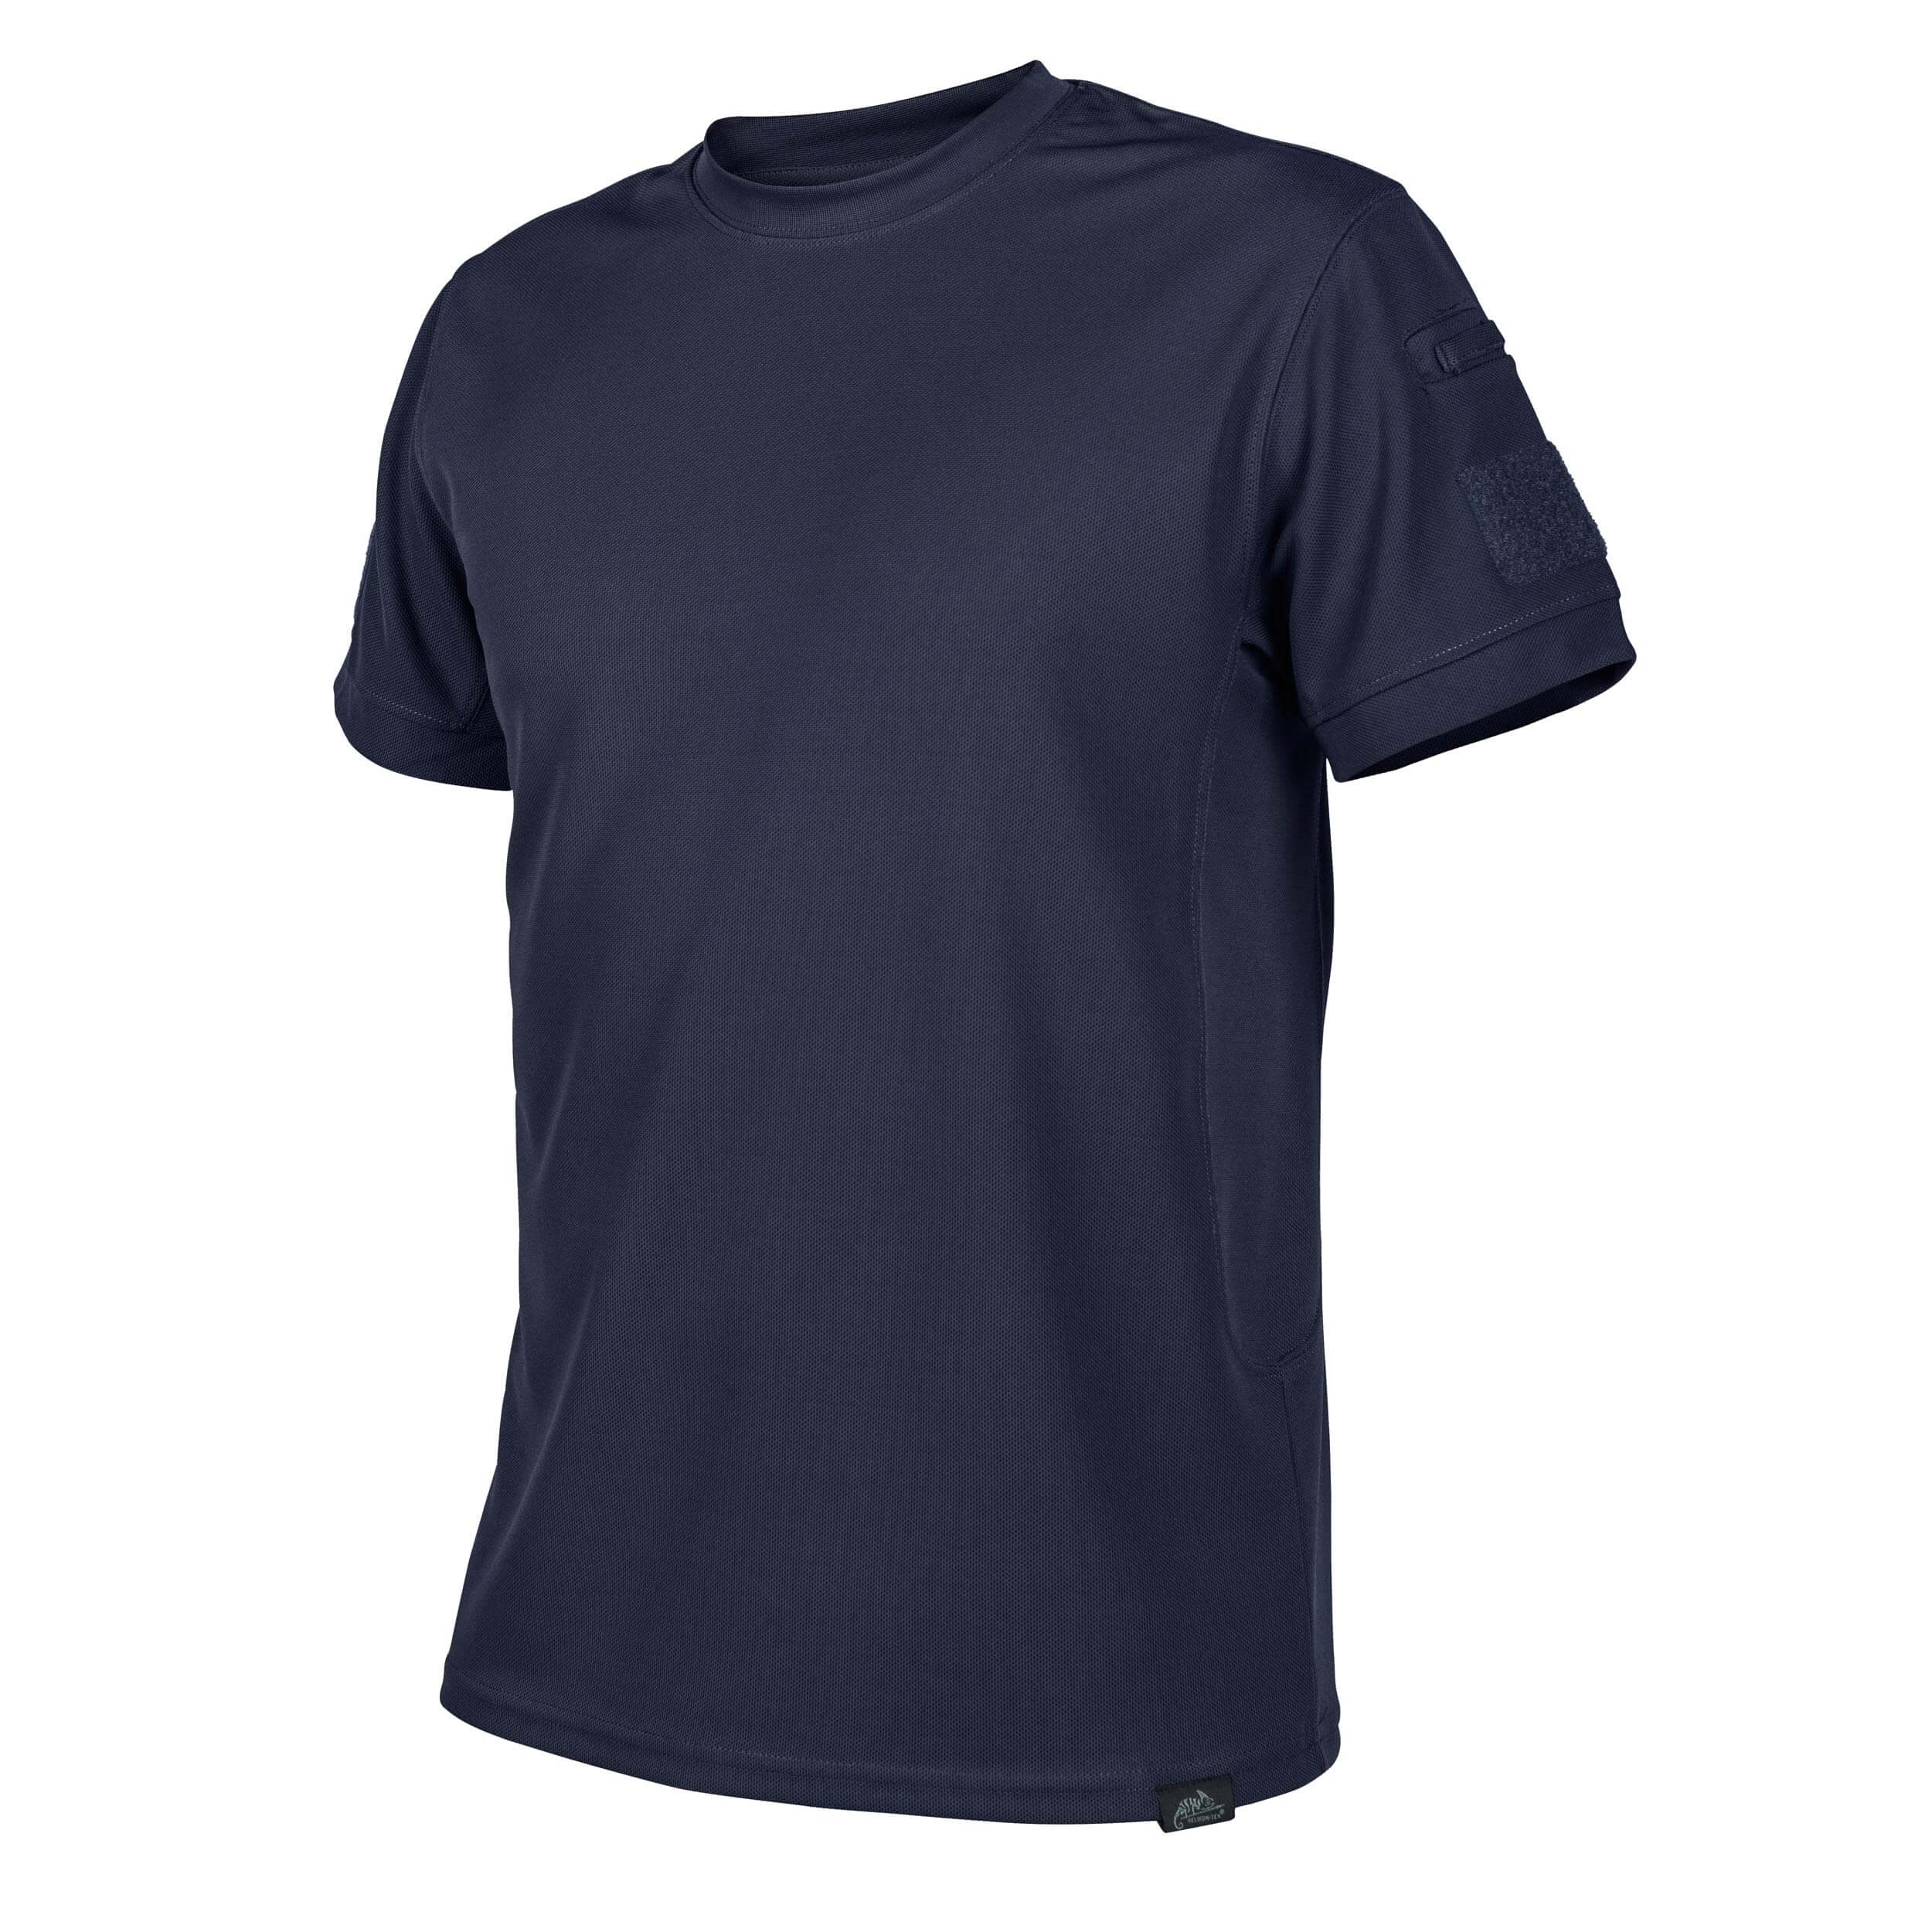 Helikon-Tex Tactical T-Shirt -Top Cool- Navy Blue